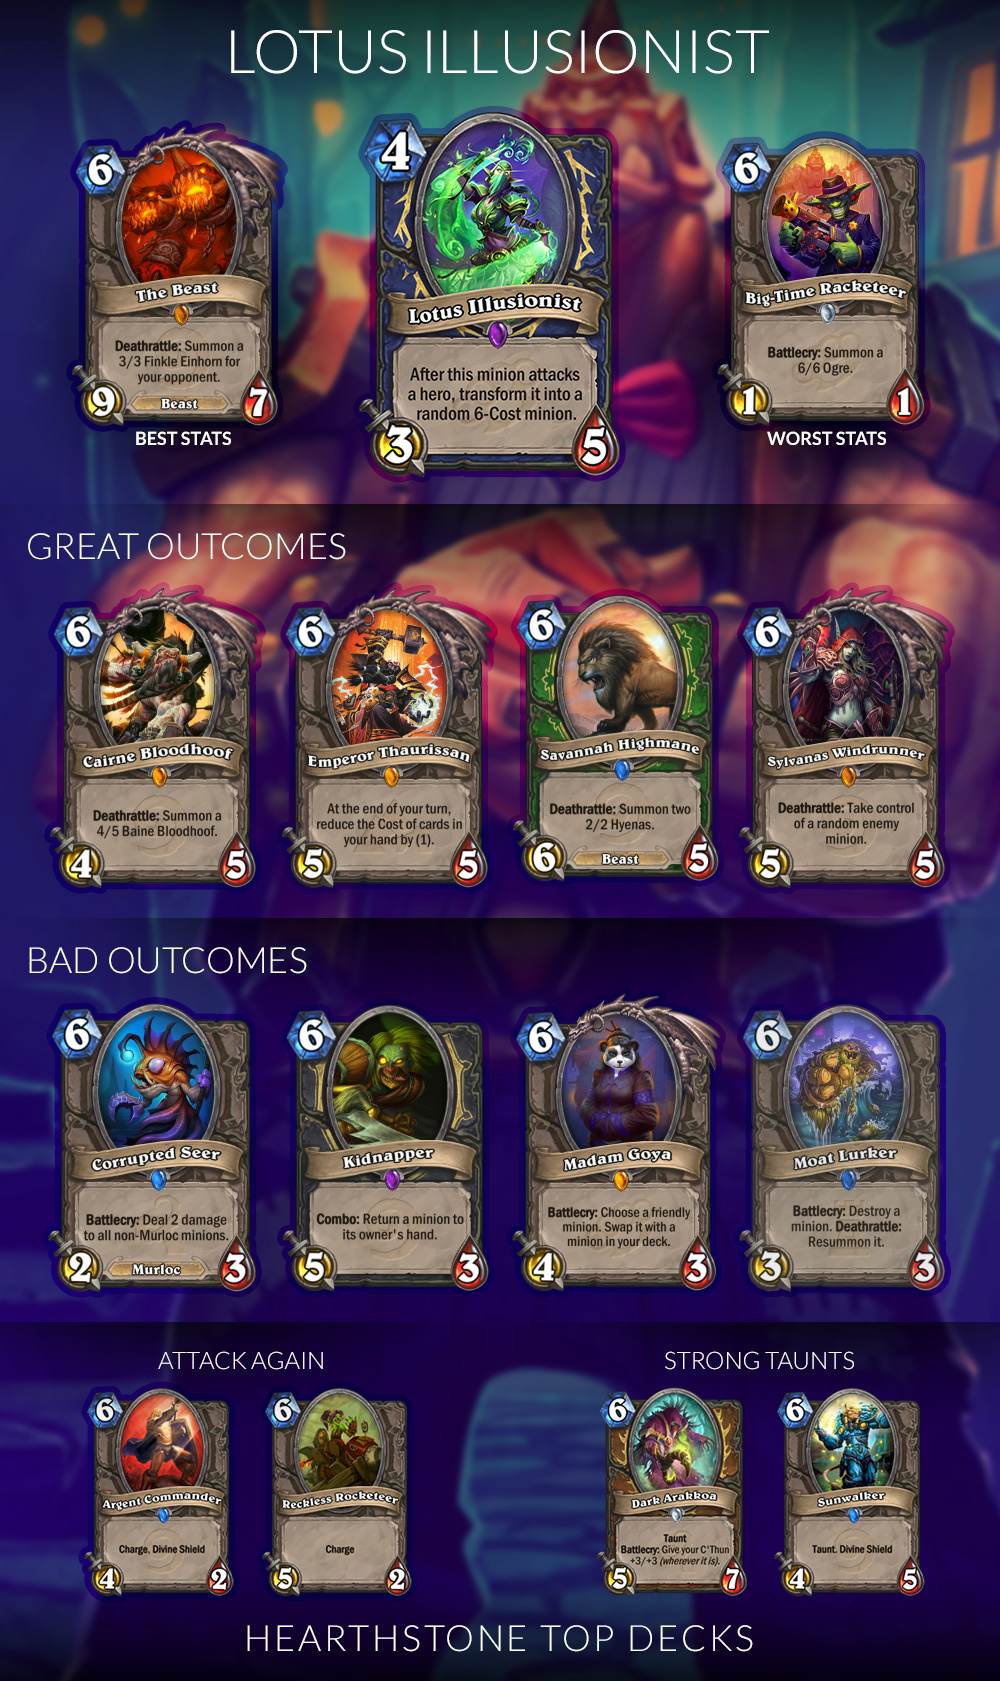 Visual Guides of Possibilities for Finders Keepers, Kabal